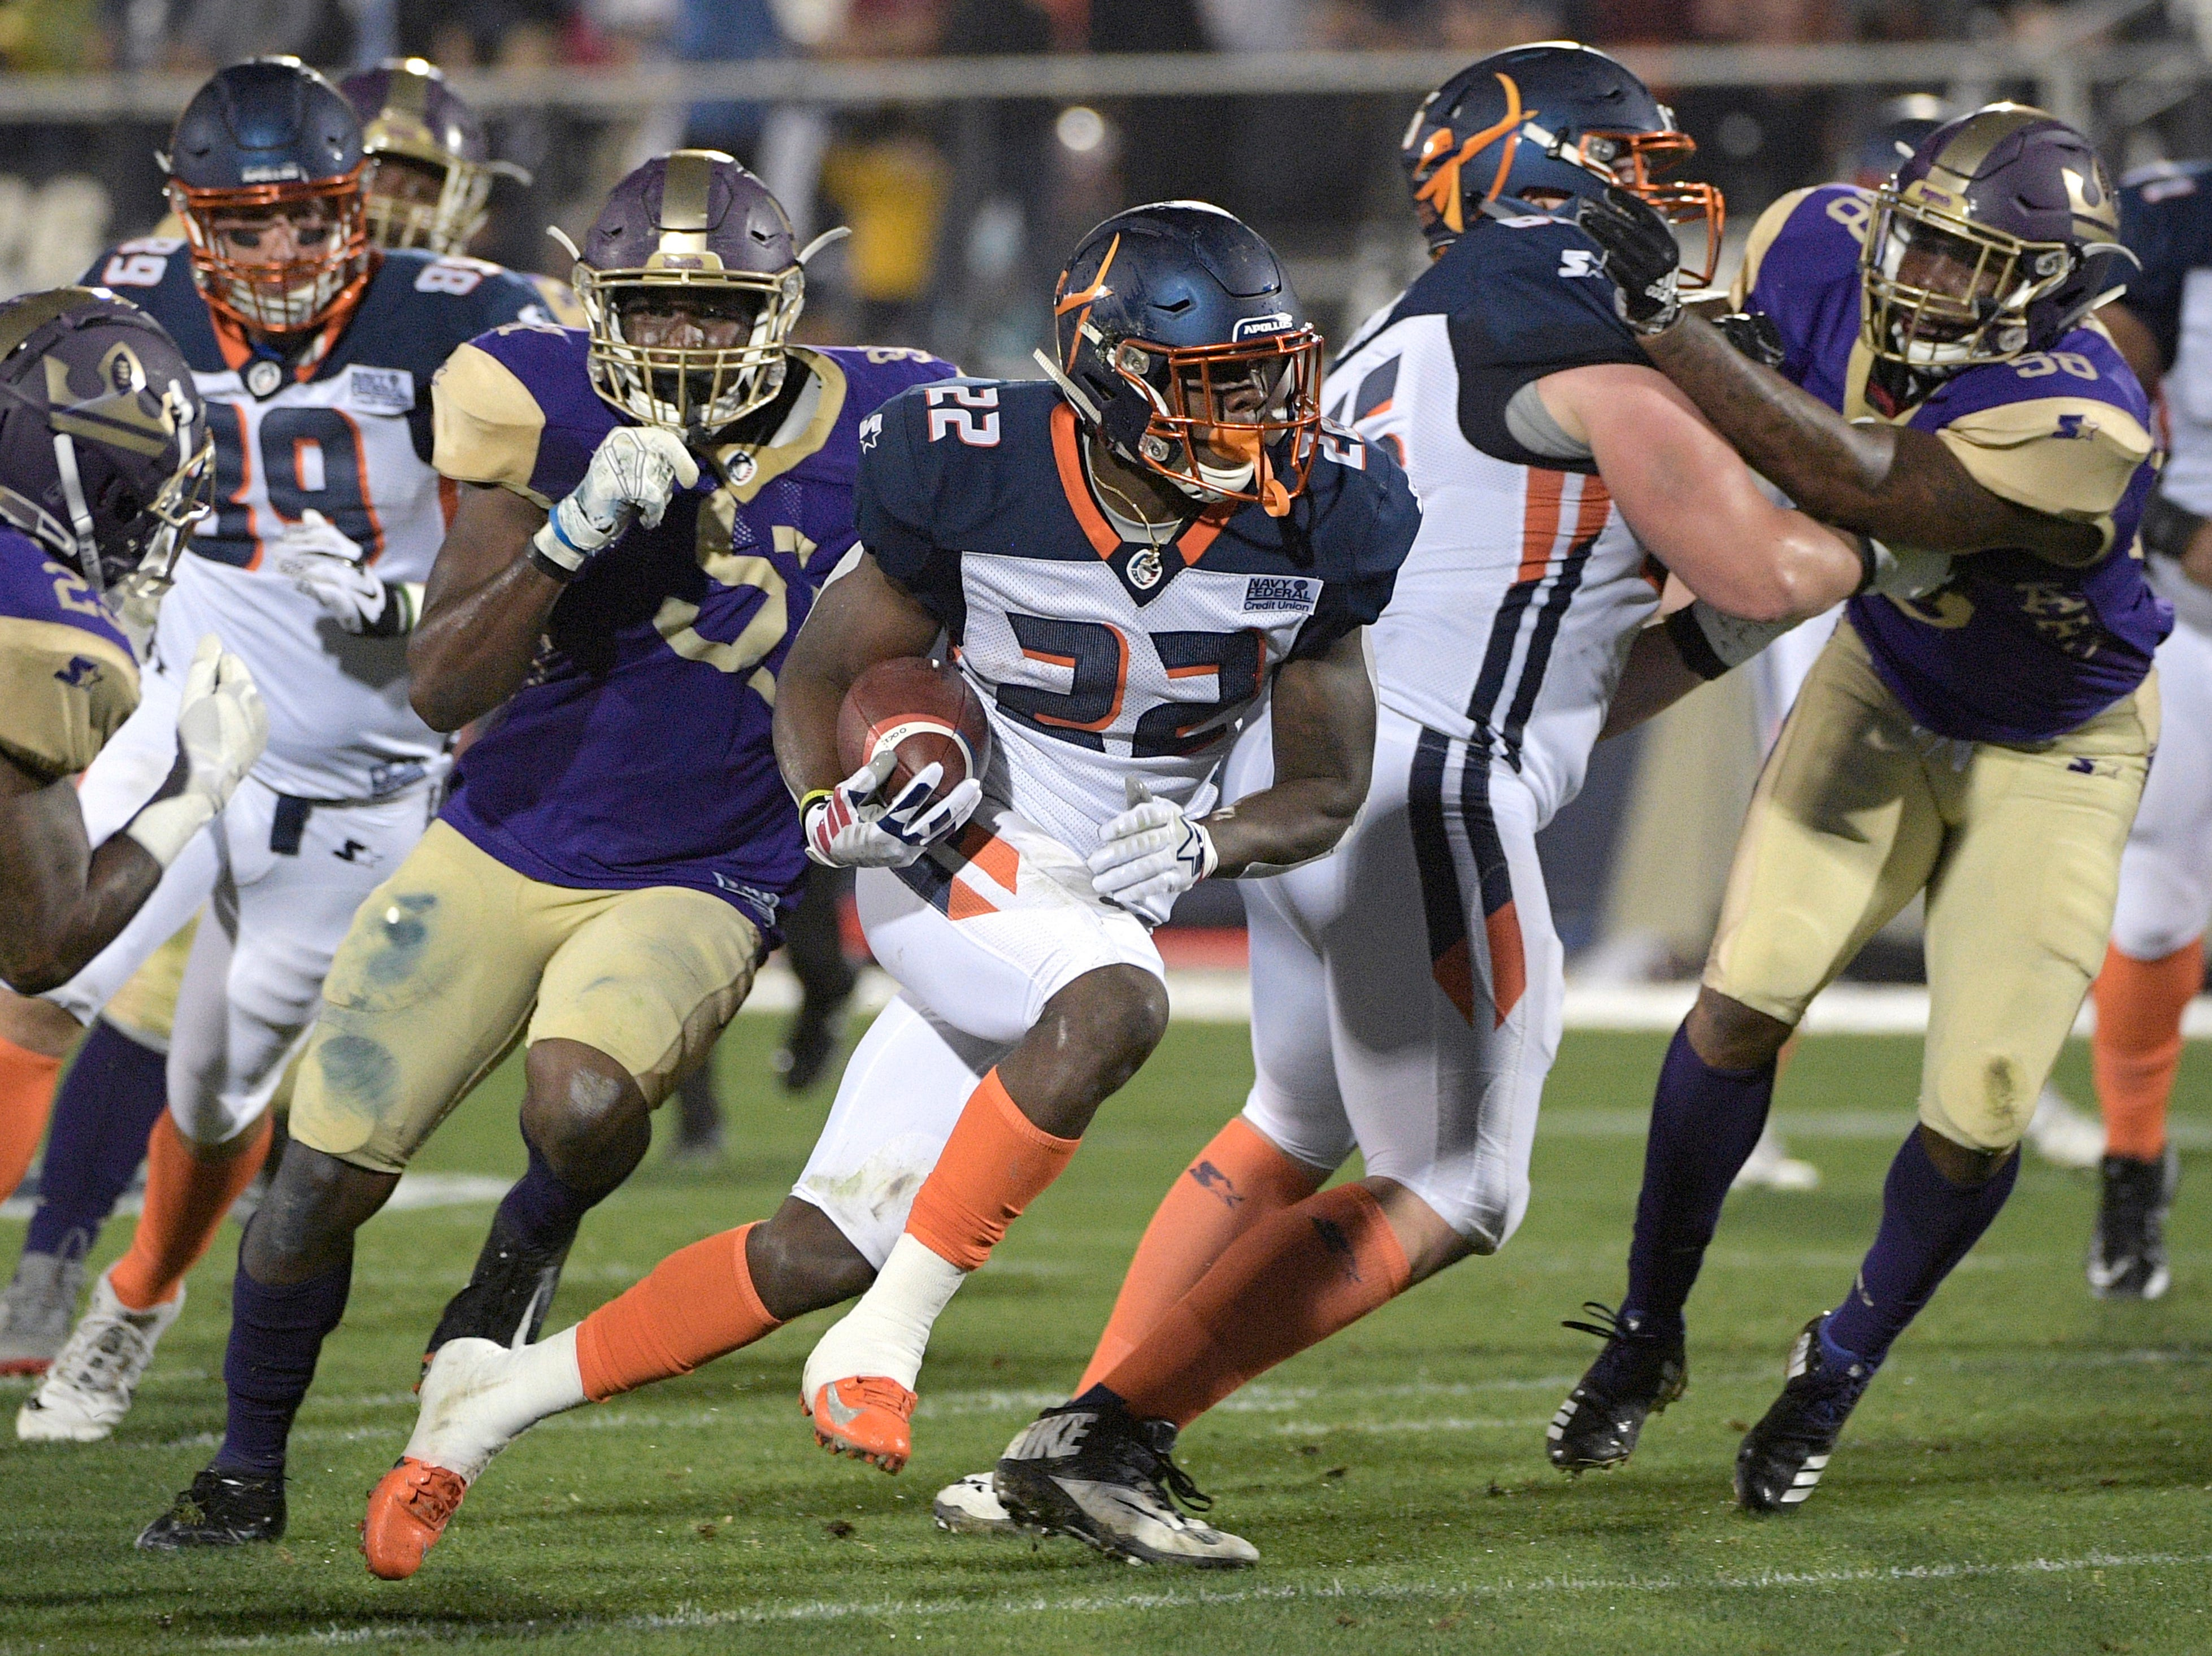 Orlando Apollos running back D'Ernest Johnson (22) rushes for yardage in front of Atlanta Legends defensive back Desmond Lawrence, left, defensive lineman J.T. Jones, center, and linebacker Brandon Watts (58) during the first half of an Alliance of American Football game Saturday, Feb. 9, 2019, in Orlando, Fla. (AP Photo/Phelan M. Ebenhack)